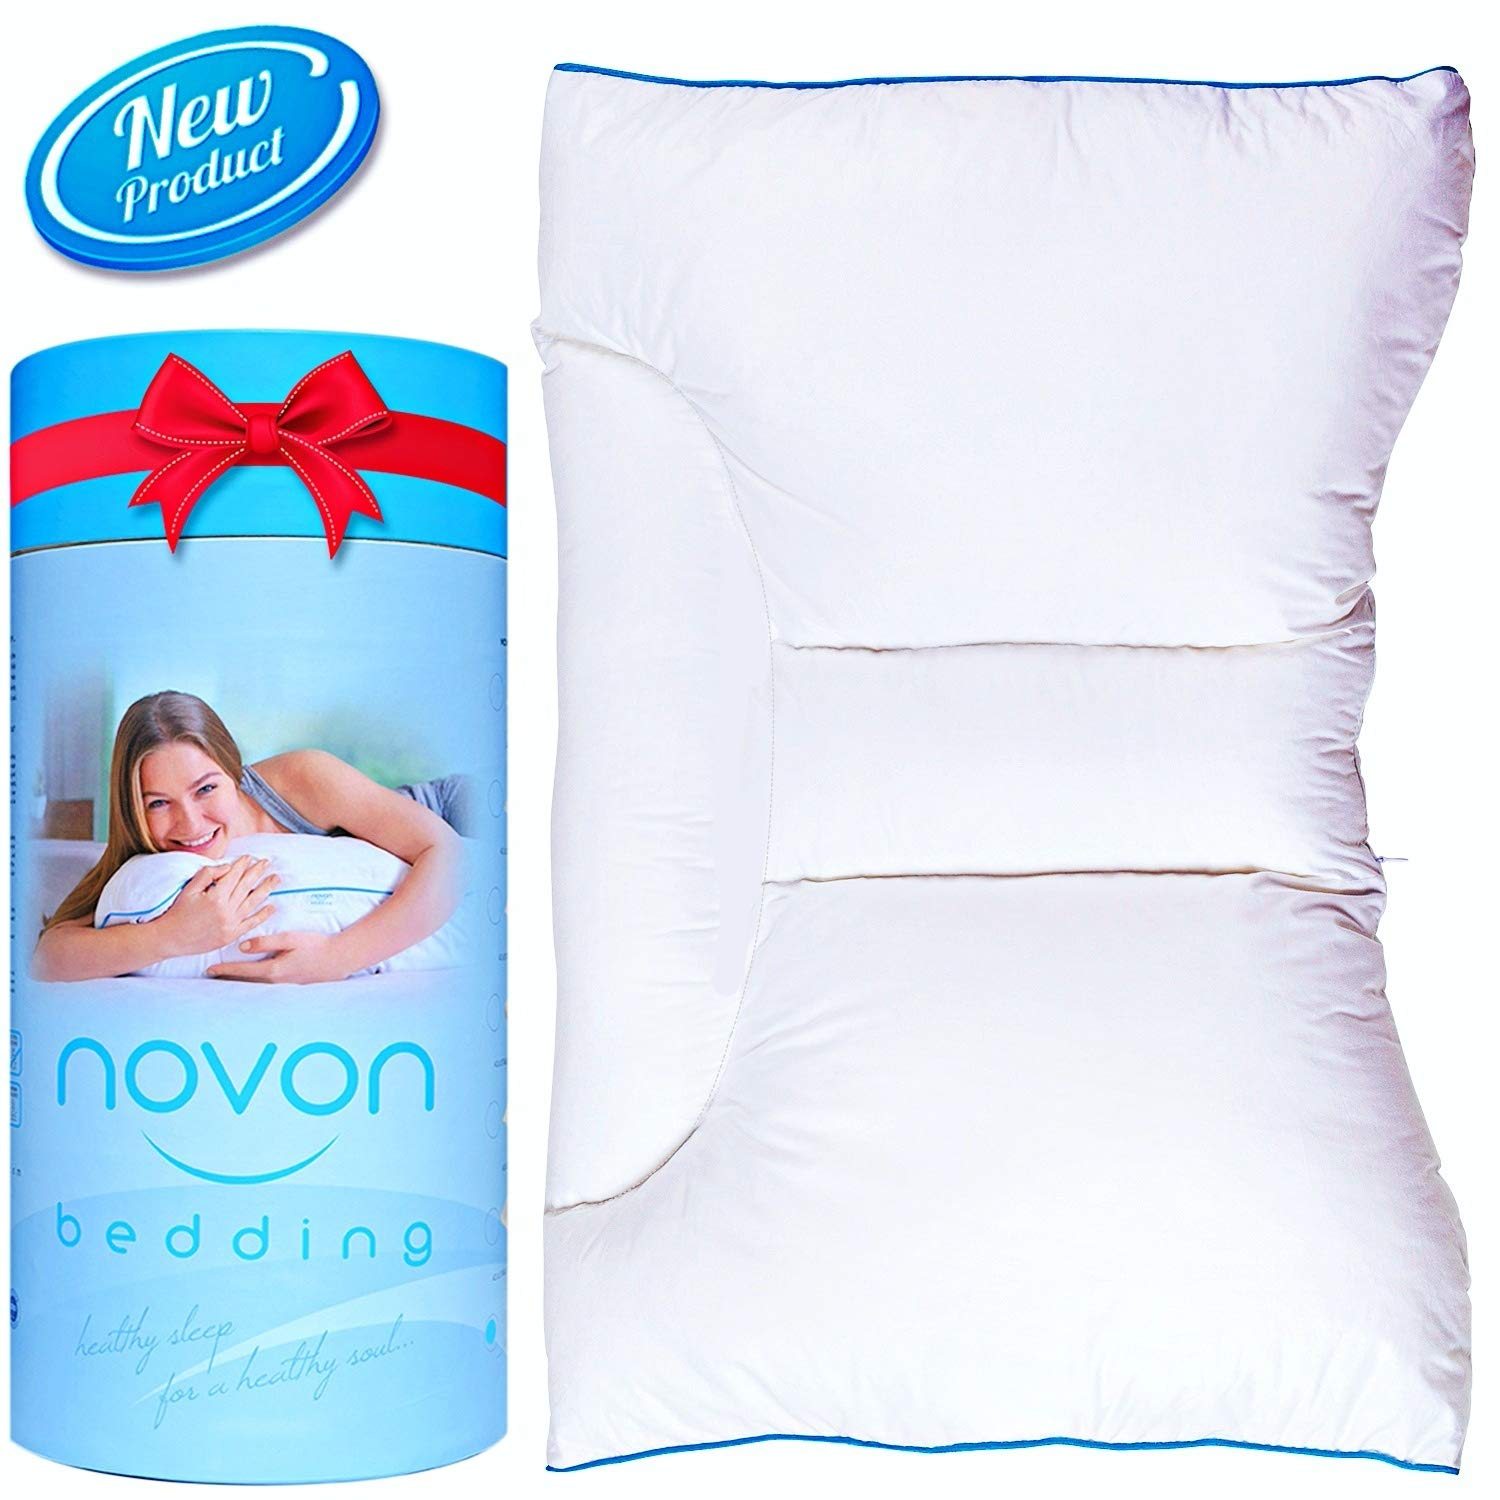 Cervical Pillow for Sleeping | Ergonomic Orthopedic Traction Pillow for Neck and Back Pain Relief | Neck & Shoulder Support Side Back Sleepers | Adjustable Contour Design-No Memory Foam - Cotton Cover